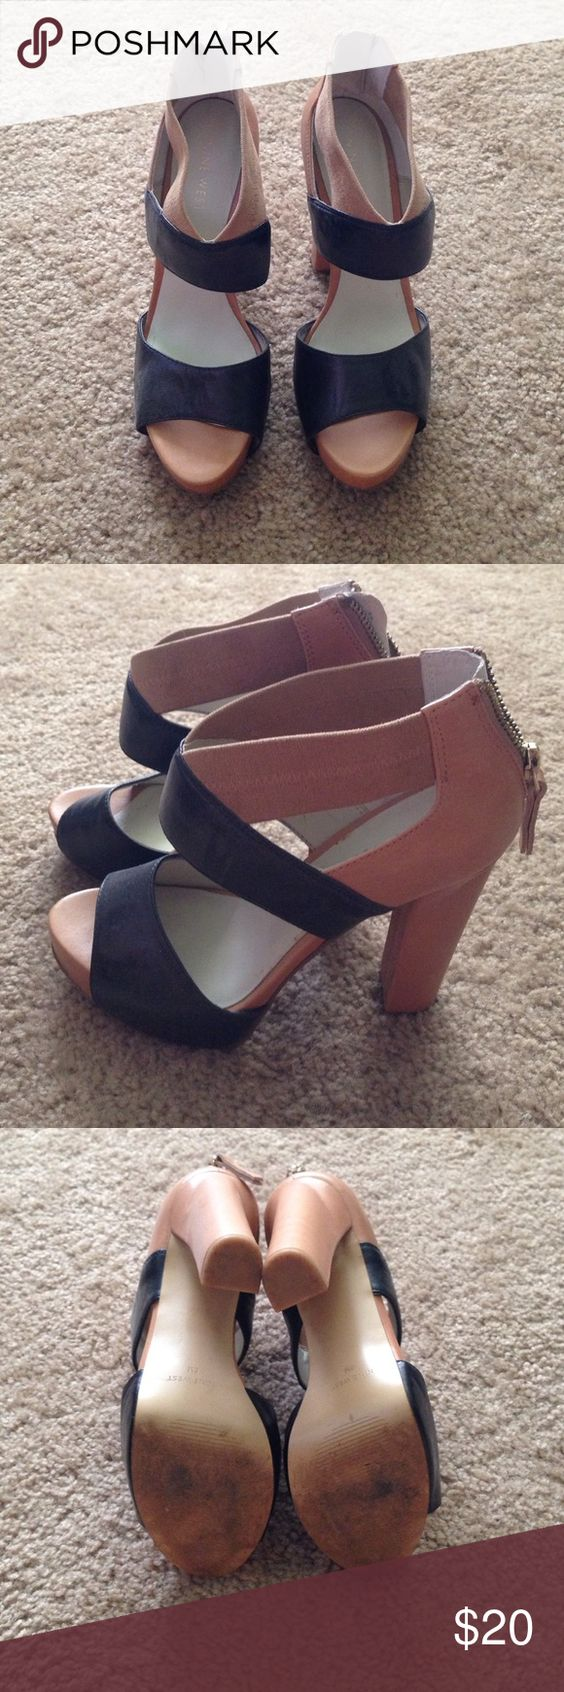 Color block Nine West heels! These will go with everything! Worn a time or two. Nine West Shoes Heels